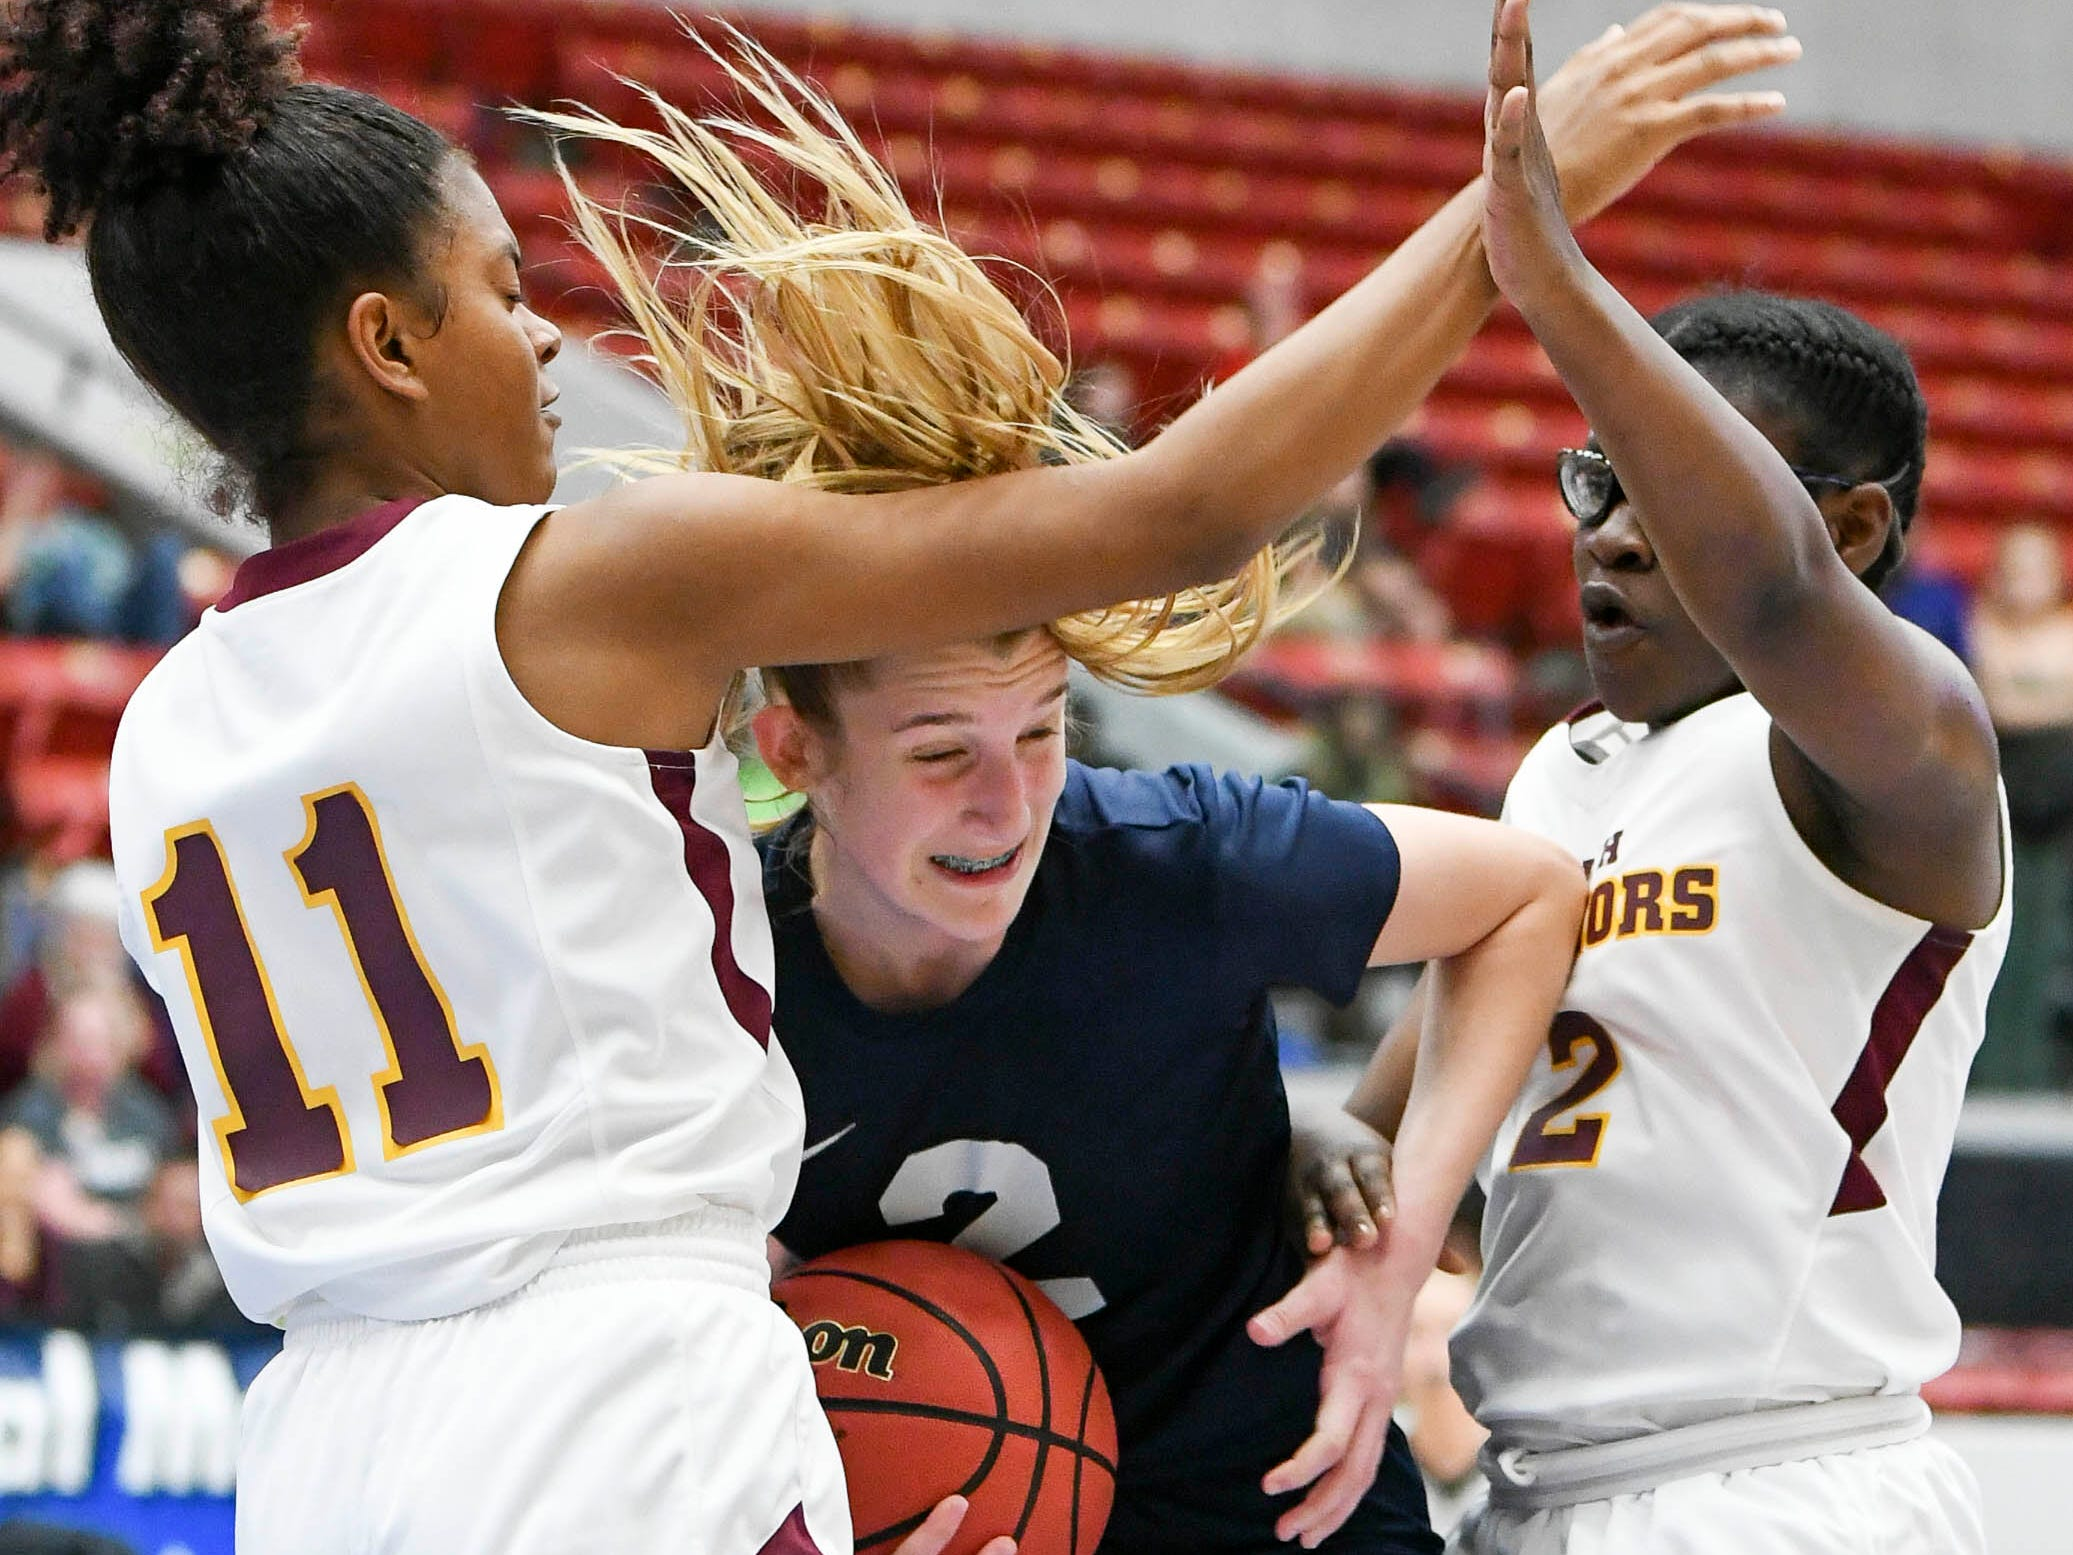 Emma Risch of Florida Prep struggles to keep a rebound from Sierra Bell (11) and Ari Royal (2) of Bayshore Christian during Tuesday's Class 2A state championship game.